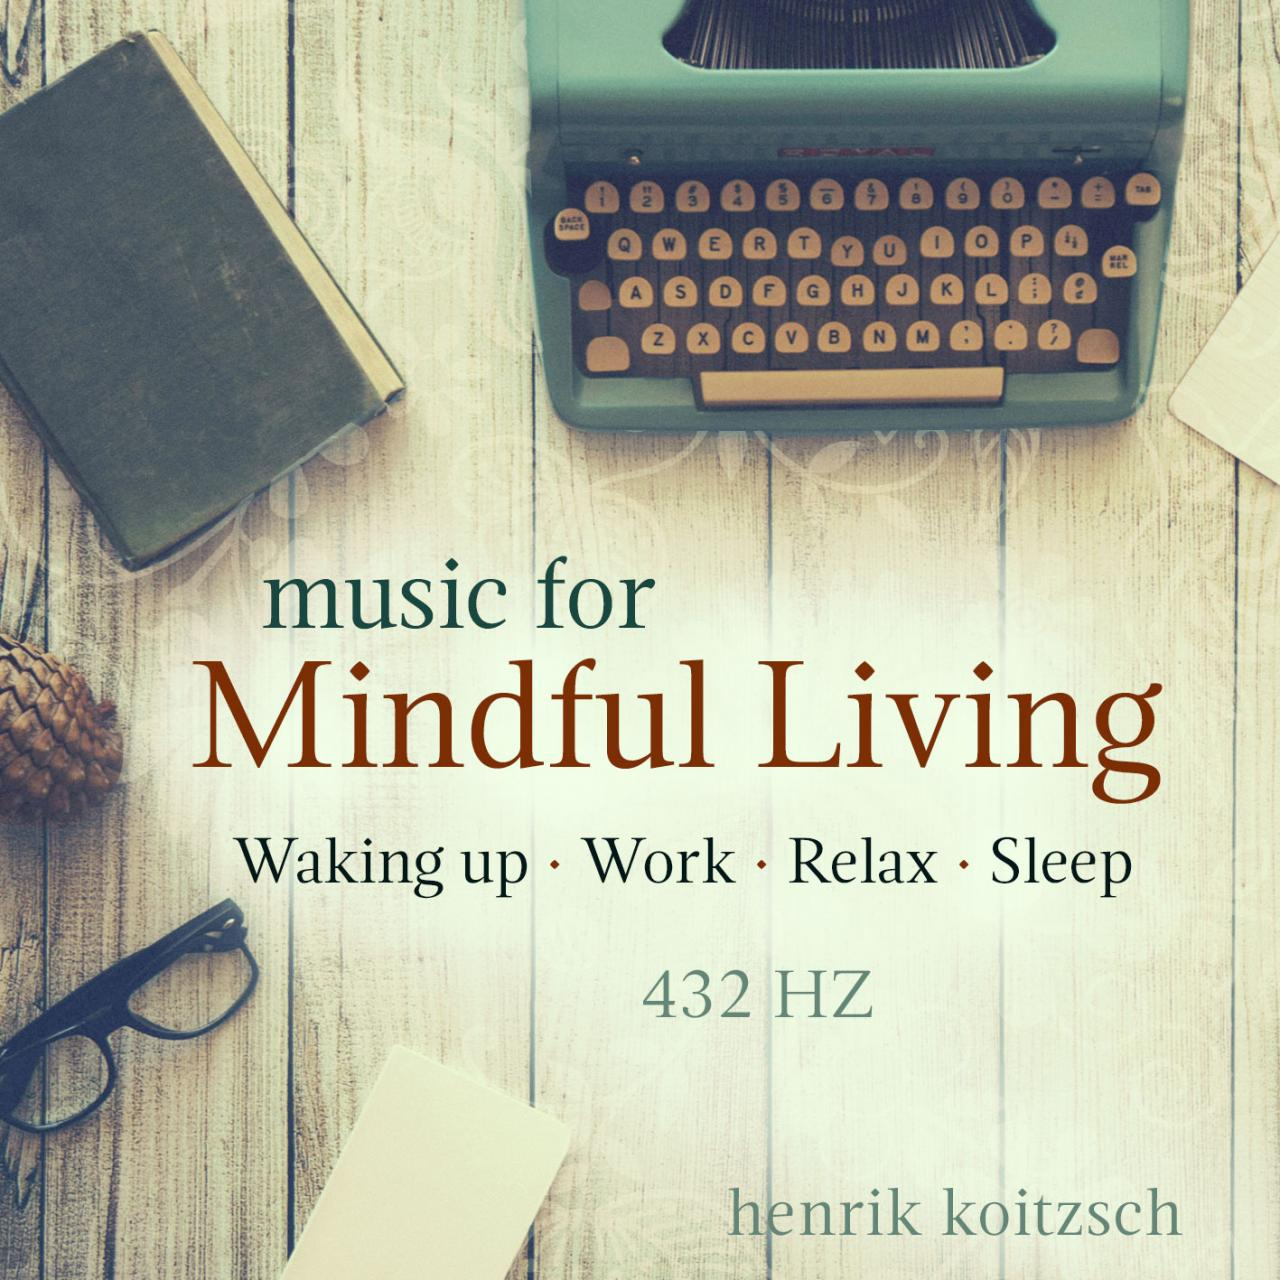 N/A – Music for mindful living på mindly.dk